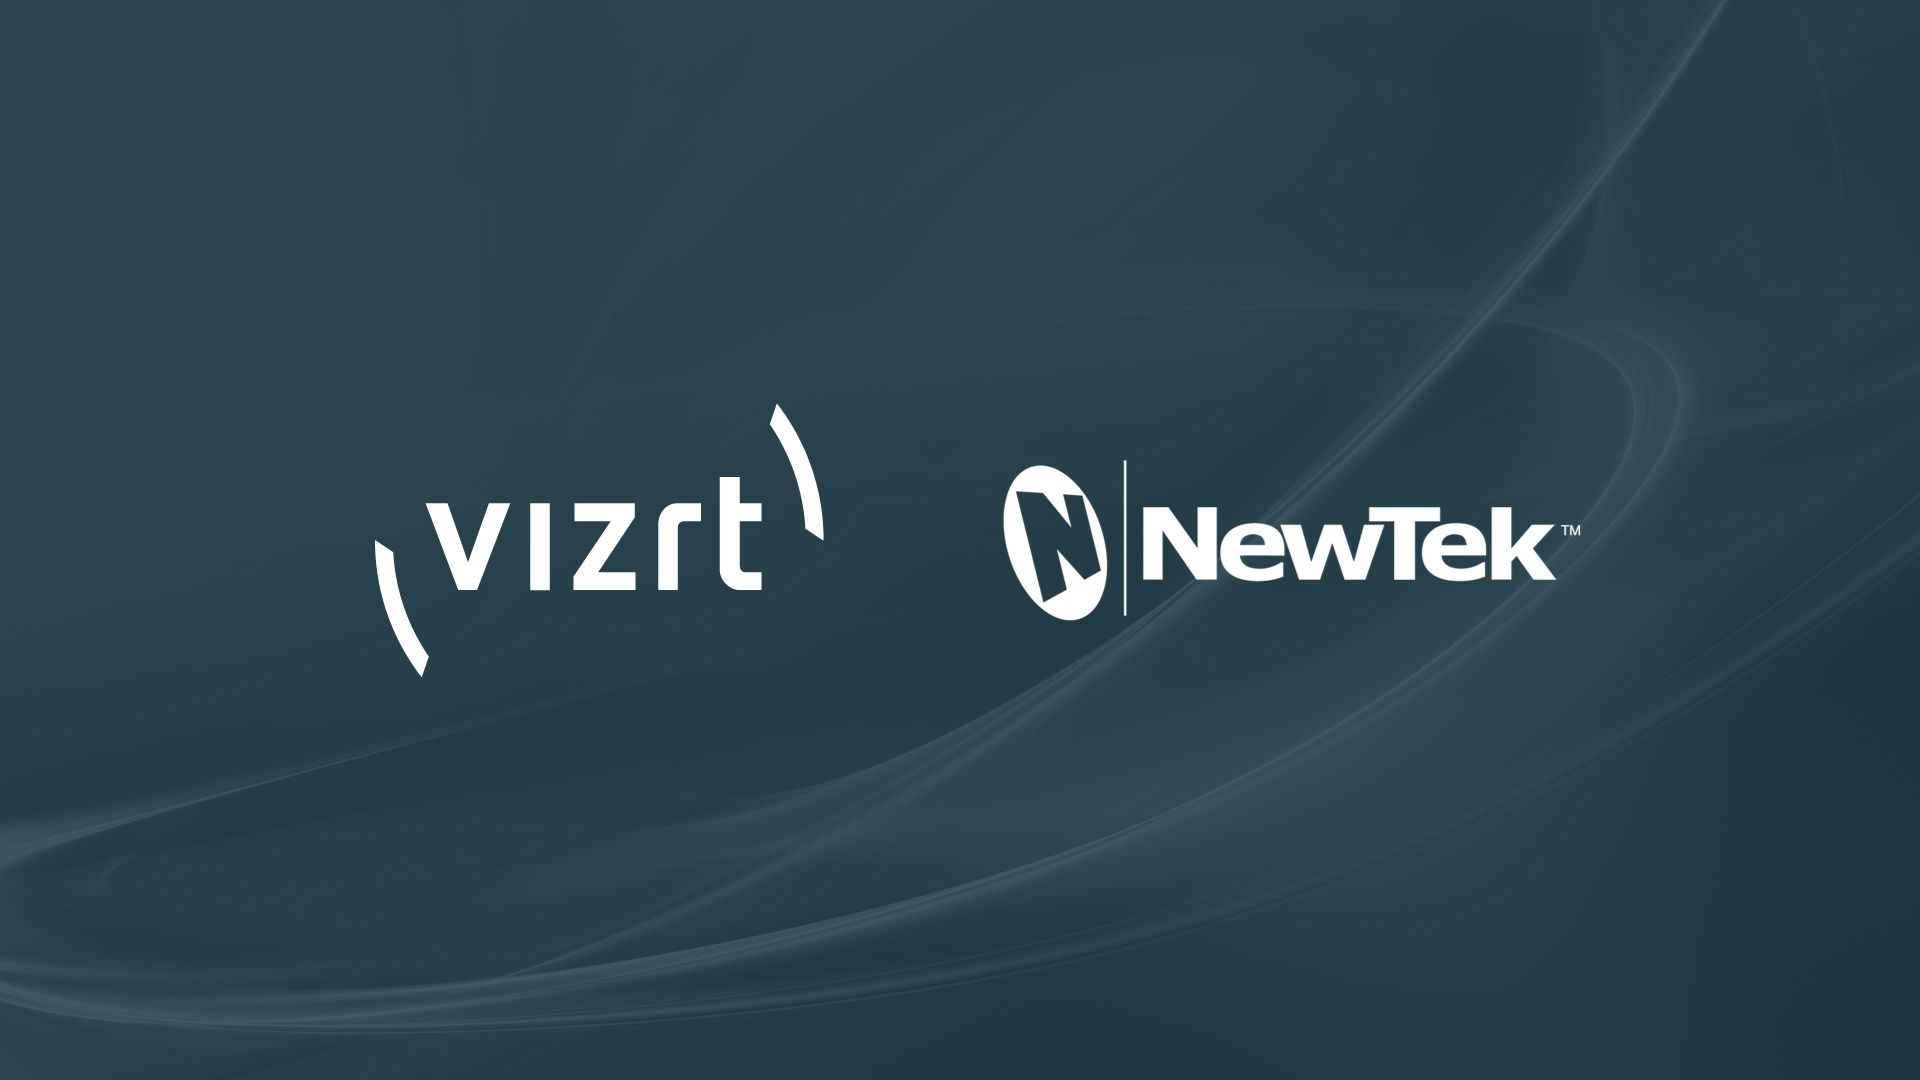 NewTek purchased by Vizrt from Norway 4